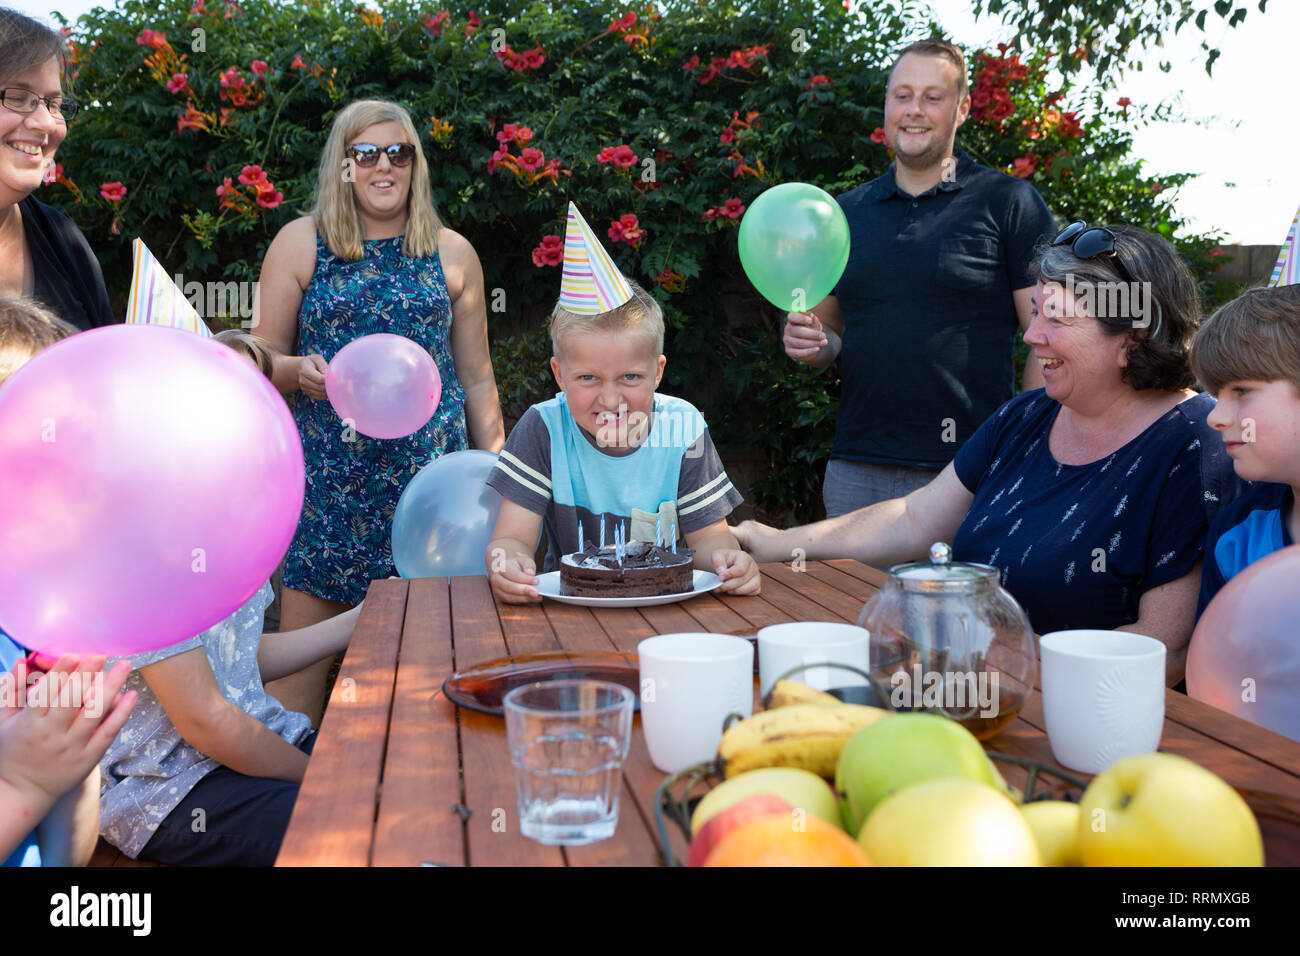 An excited boy ready for the cake tradition at family party. - Stock Image